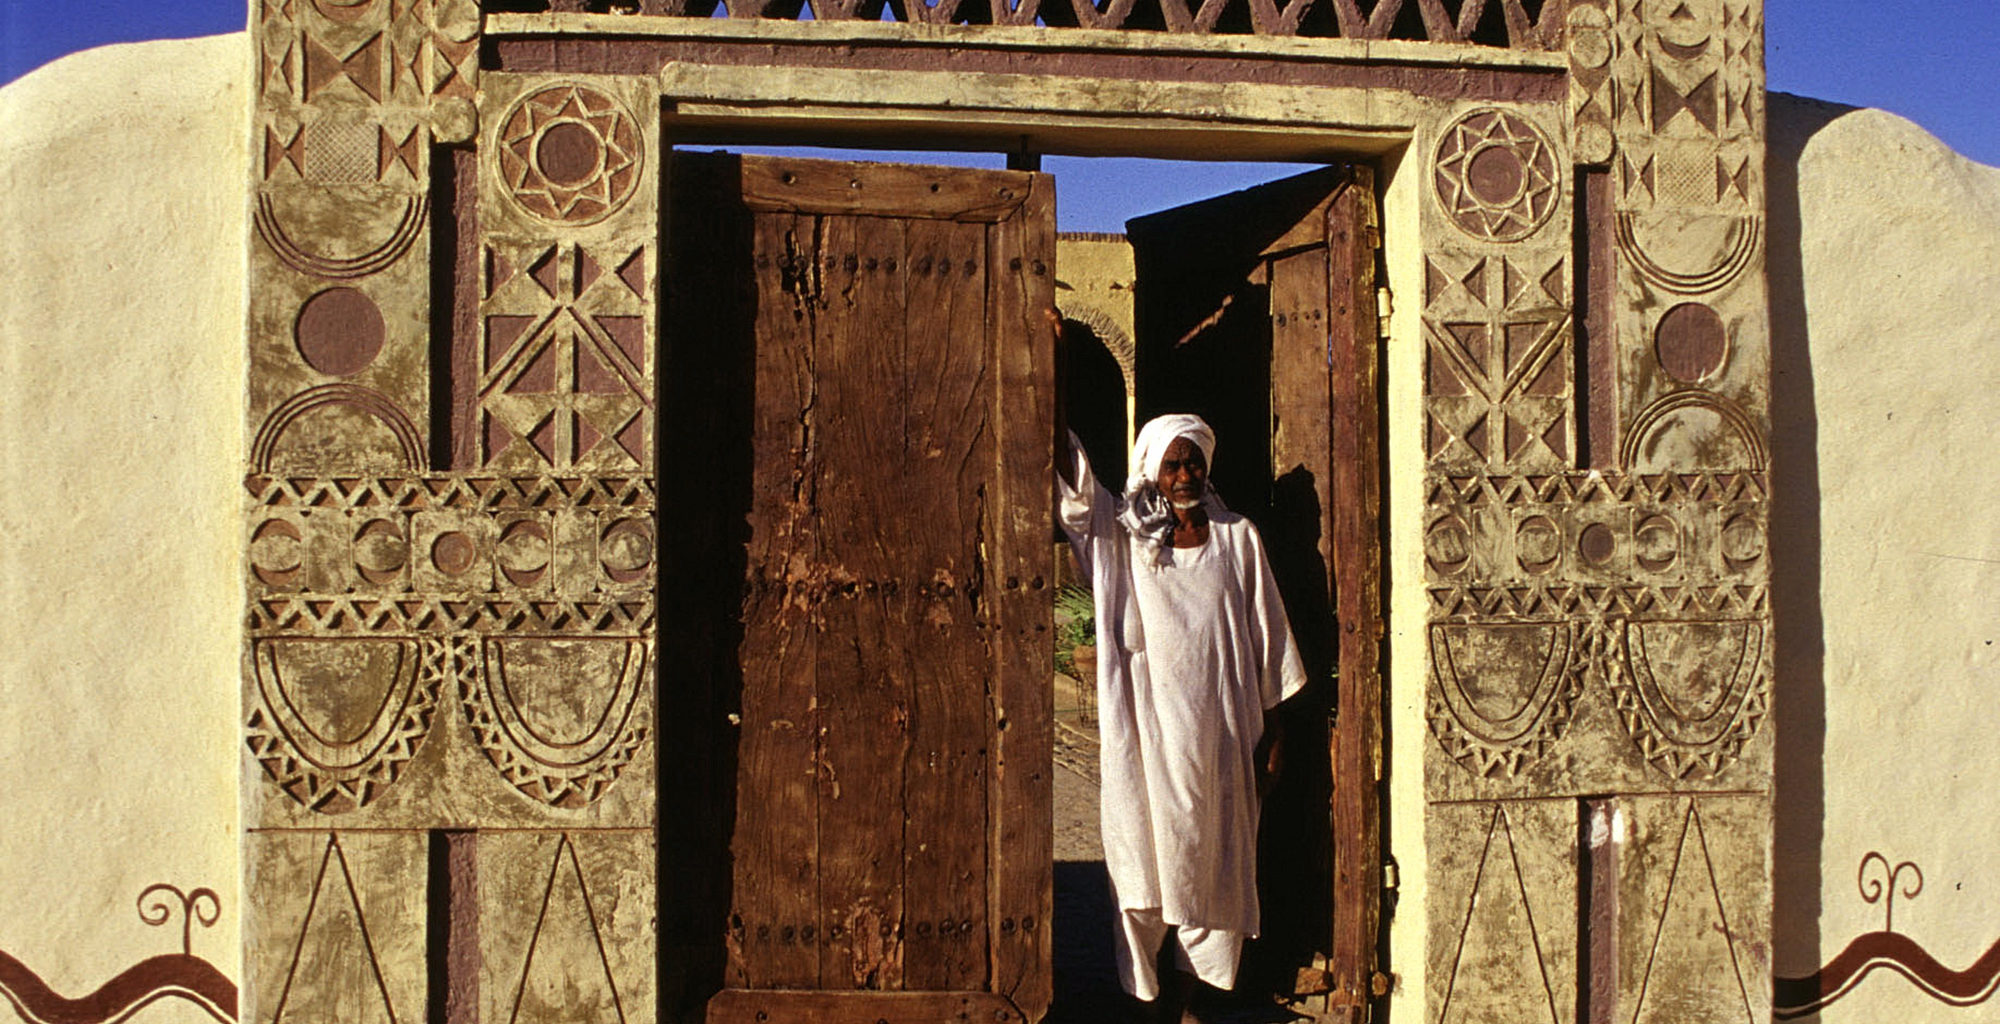 Sudan-Nubian-Rest-House-Entrance